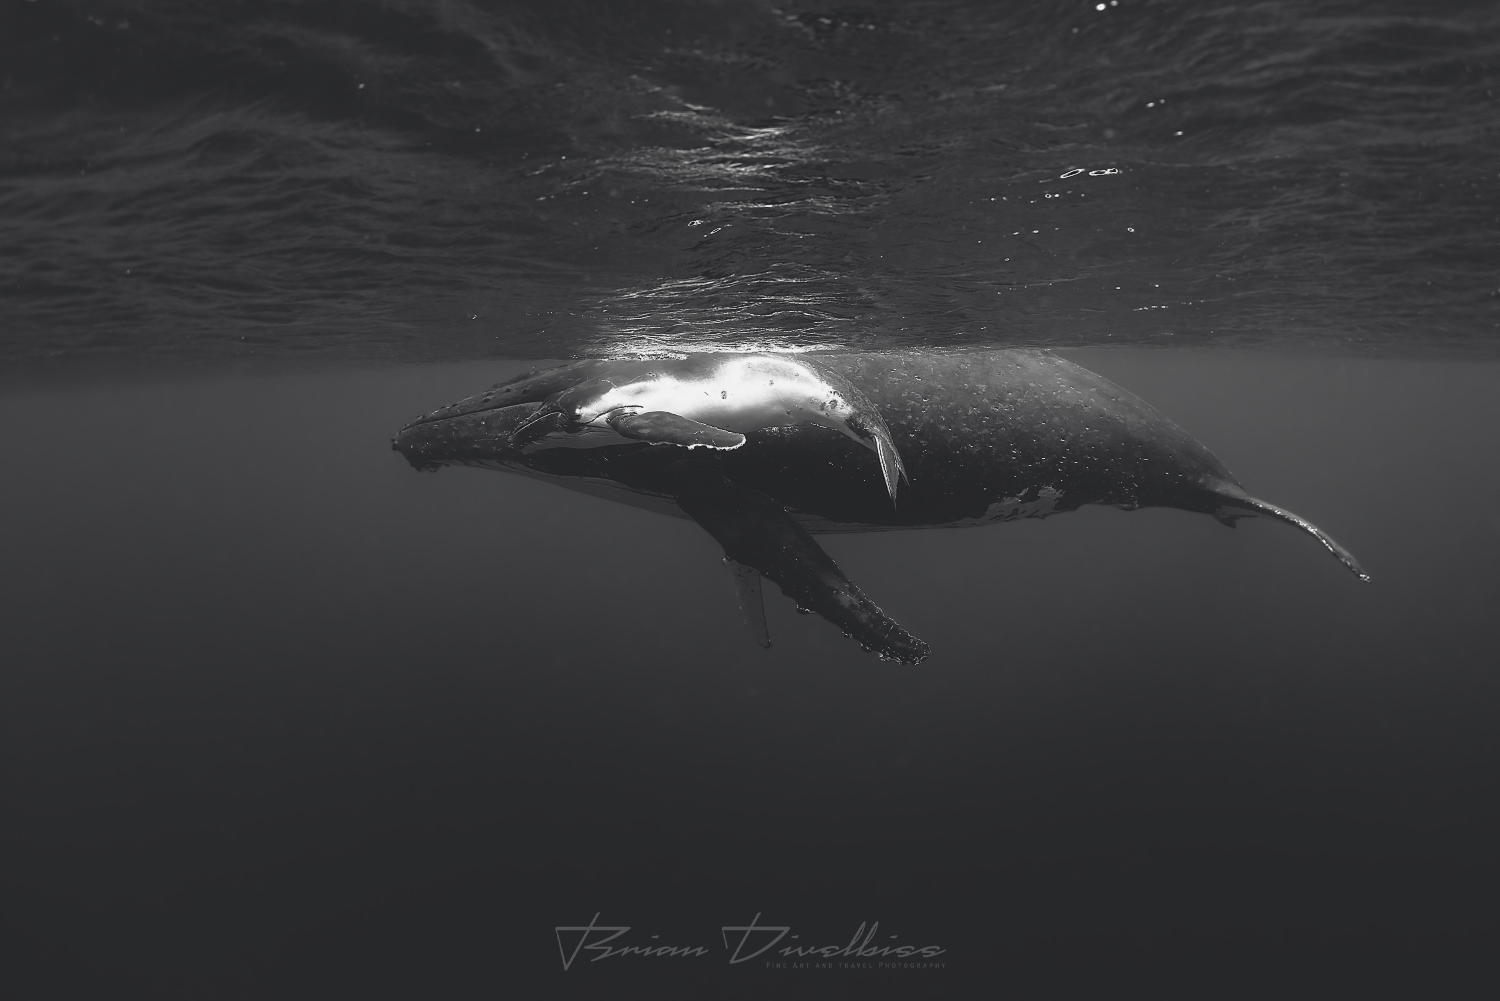 Baby humpback swims alongside humpback whale under the surface in Vava'u, Tonga in black and white.